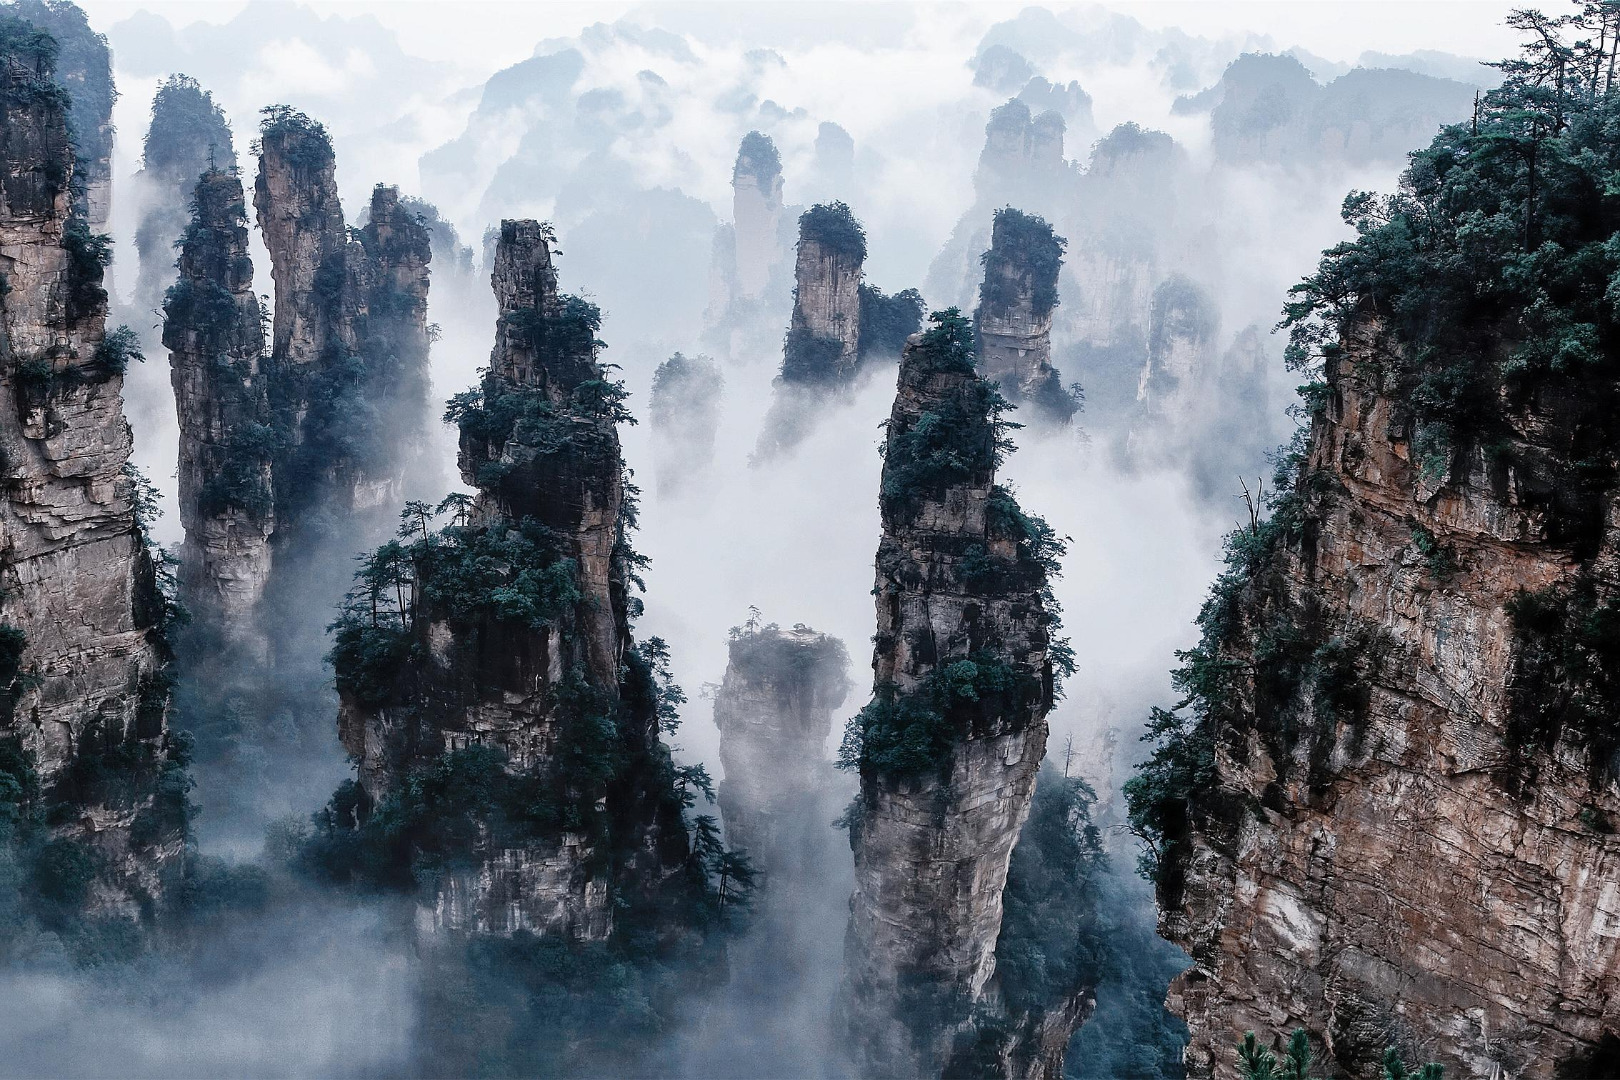 Picture from travelchina.  Zhangjiajie City features a variety of different terrains including: mountainous regions, upland areas, plains, and Karst rock areas. Among these, the mountains cover 76 percent of the total area. The world-famous natural heritage site 'Wulingyuan Scenic Area' is located on the base of these great mountains. Areas worth visiting include Zhangjiajie National Forest Park (known as China's first national forest park), Suoxiyu Natural Resource Reserve, and Tianzi Mountain Natural Resource Reserve. The scenic area hosts many natural features including: mountains, forests, caves, lakes and waterfalls and perhaps there are more than three thousand rock ridges and eight hundred ghylls. They enjoy the reputation of 'Original Picture on Mountain and River of China'. This wonderland is covered with dense forests and is considered Mother Nature's Oxygen Bar.